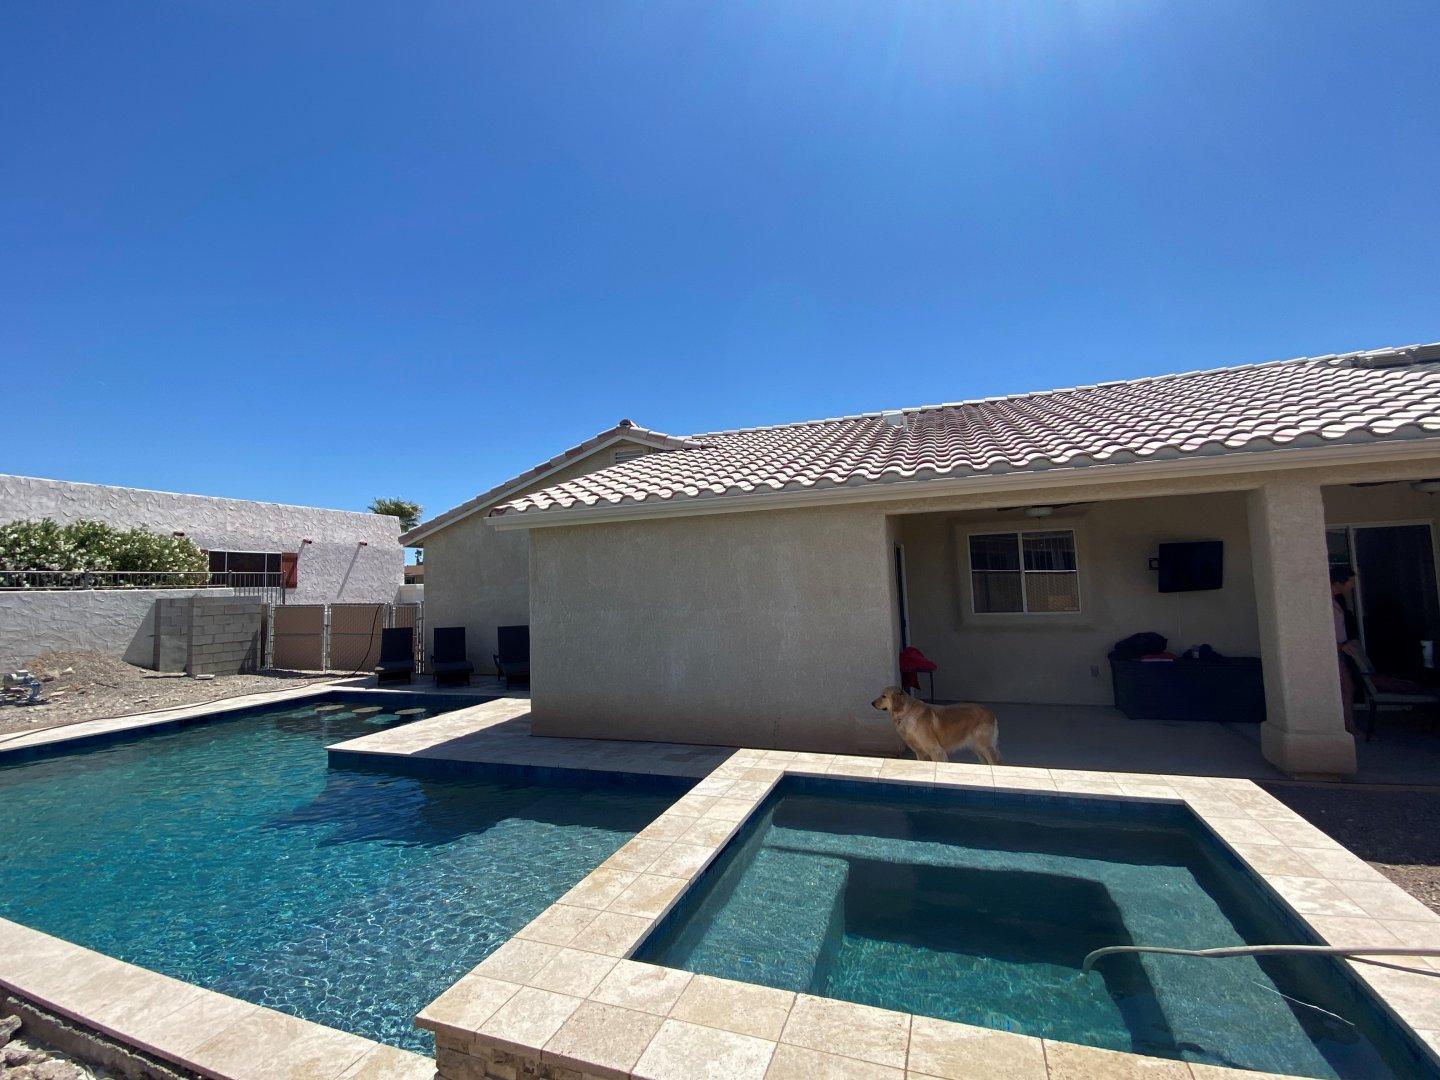 spa and pool to patio water.jpg